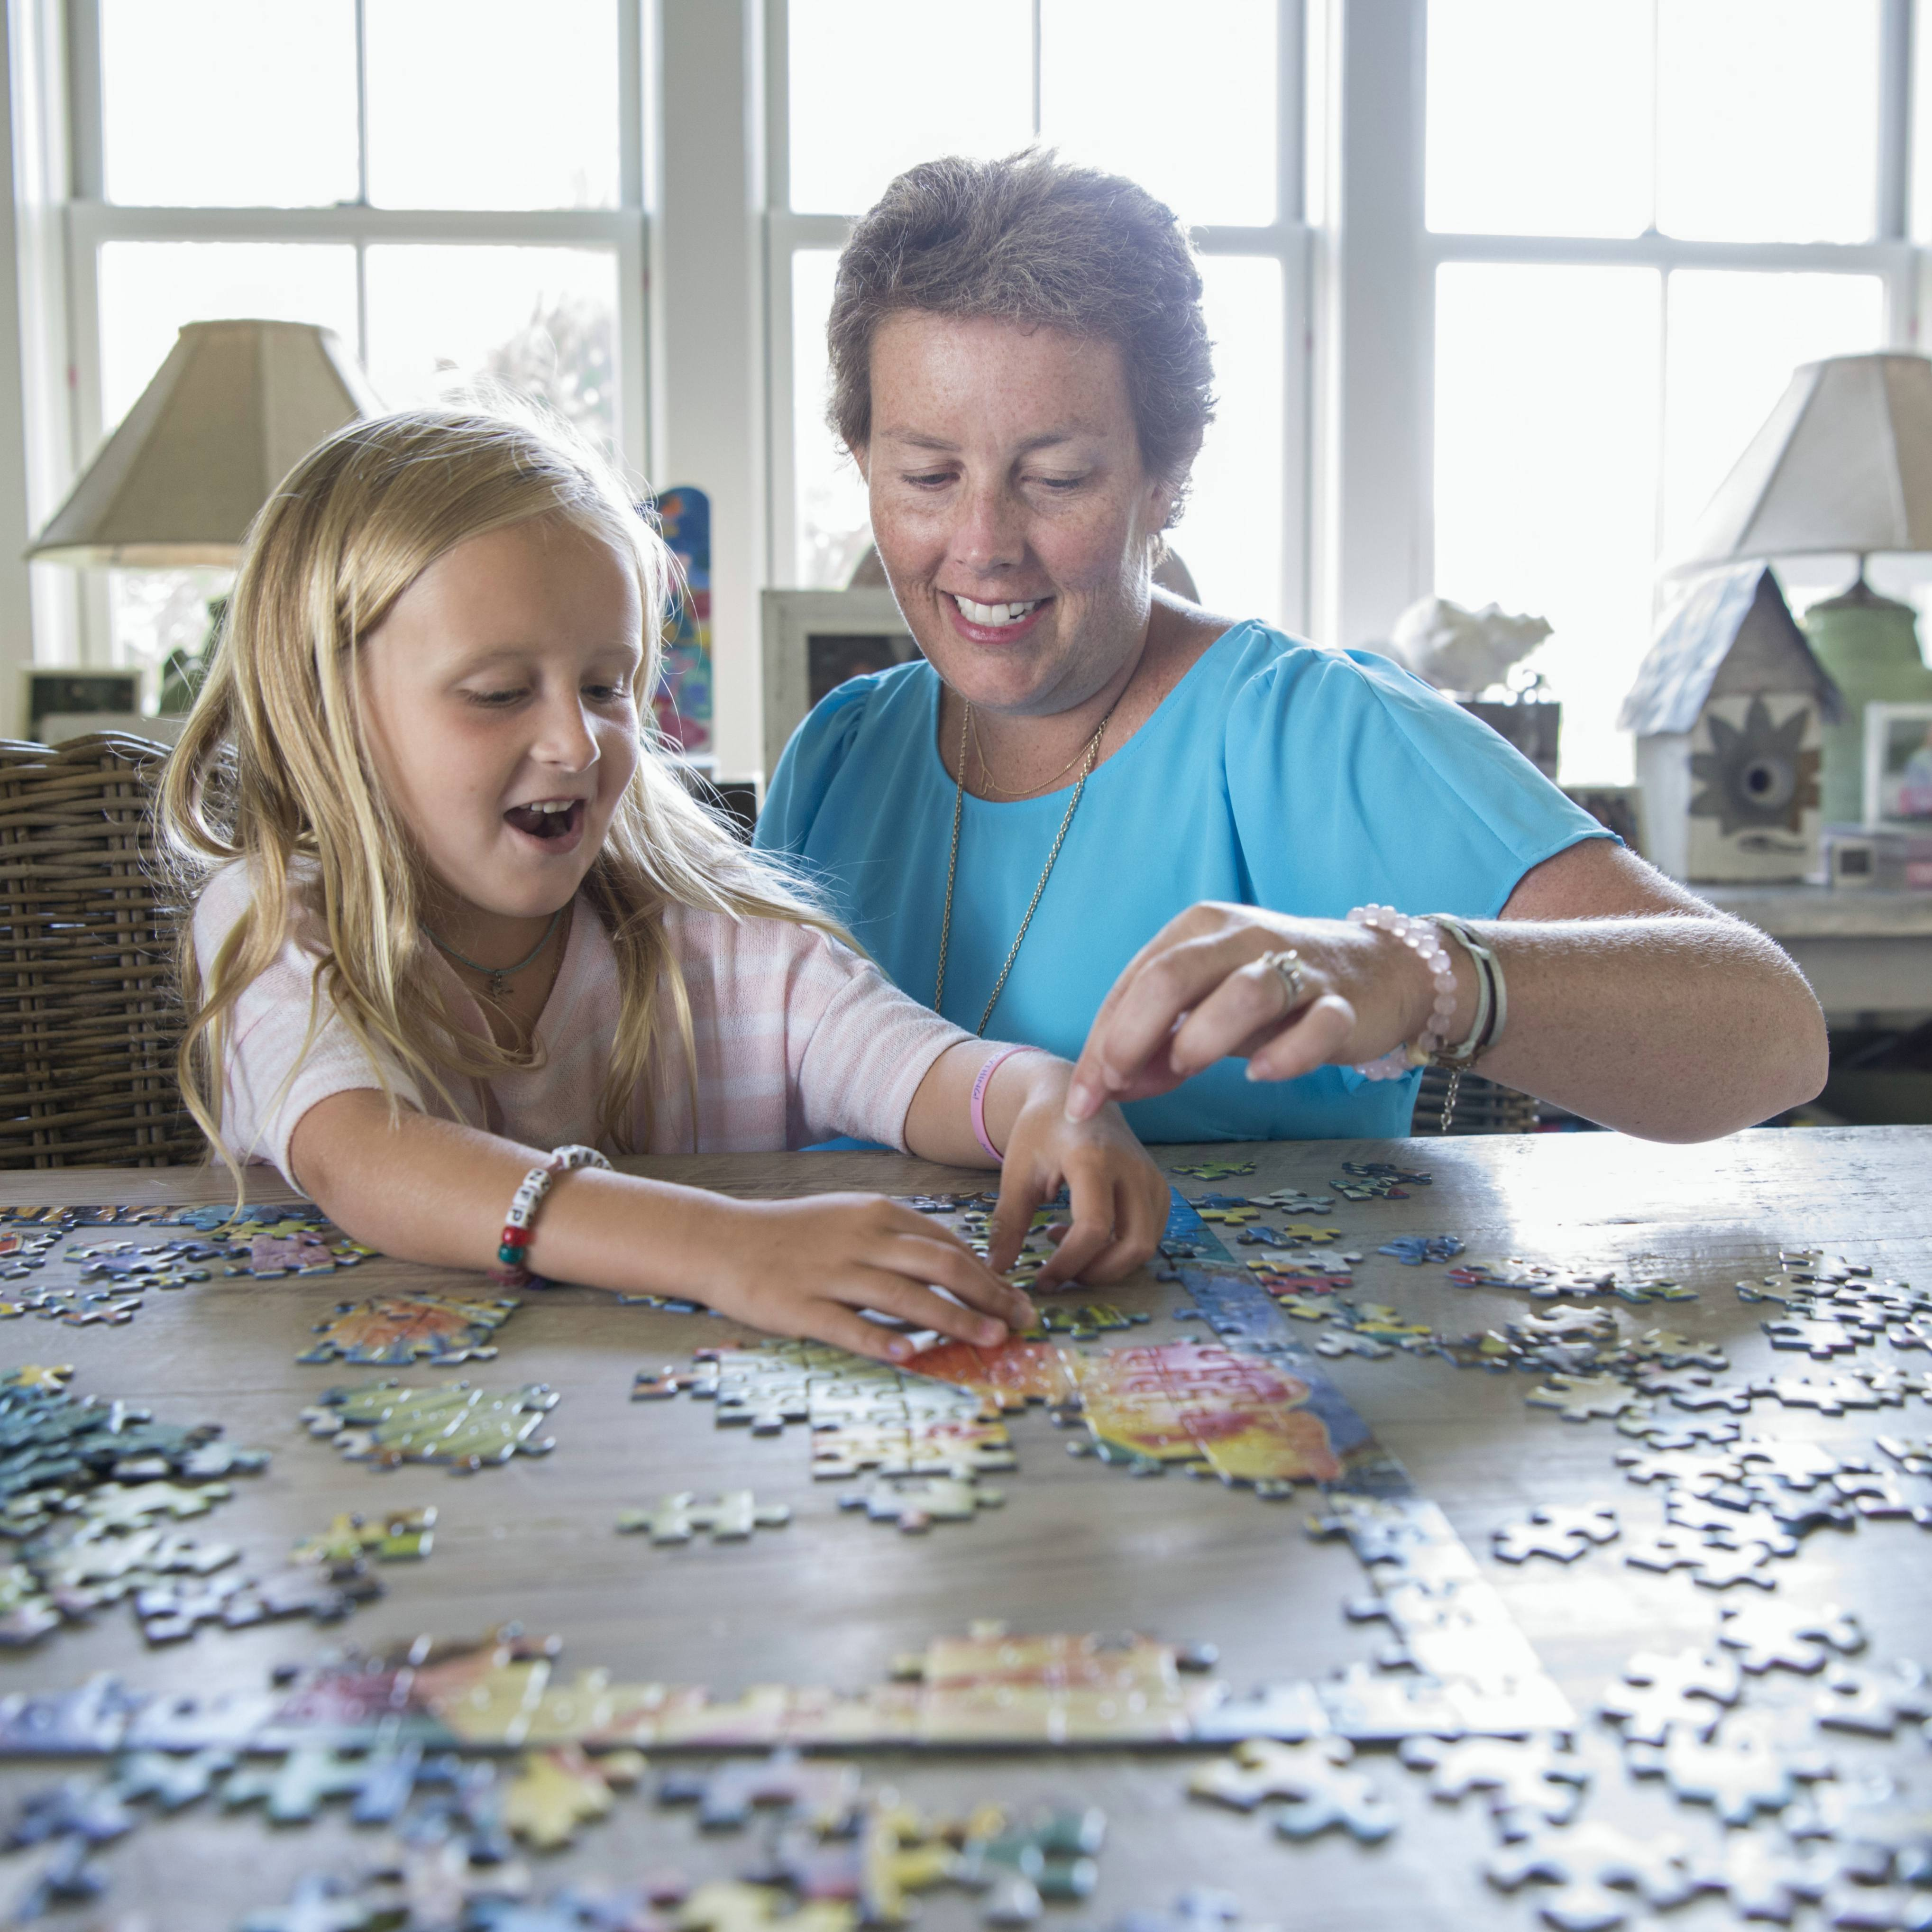 cancer patient Hollis Youngner working on a puzzle with her daughter